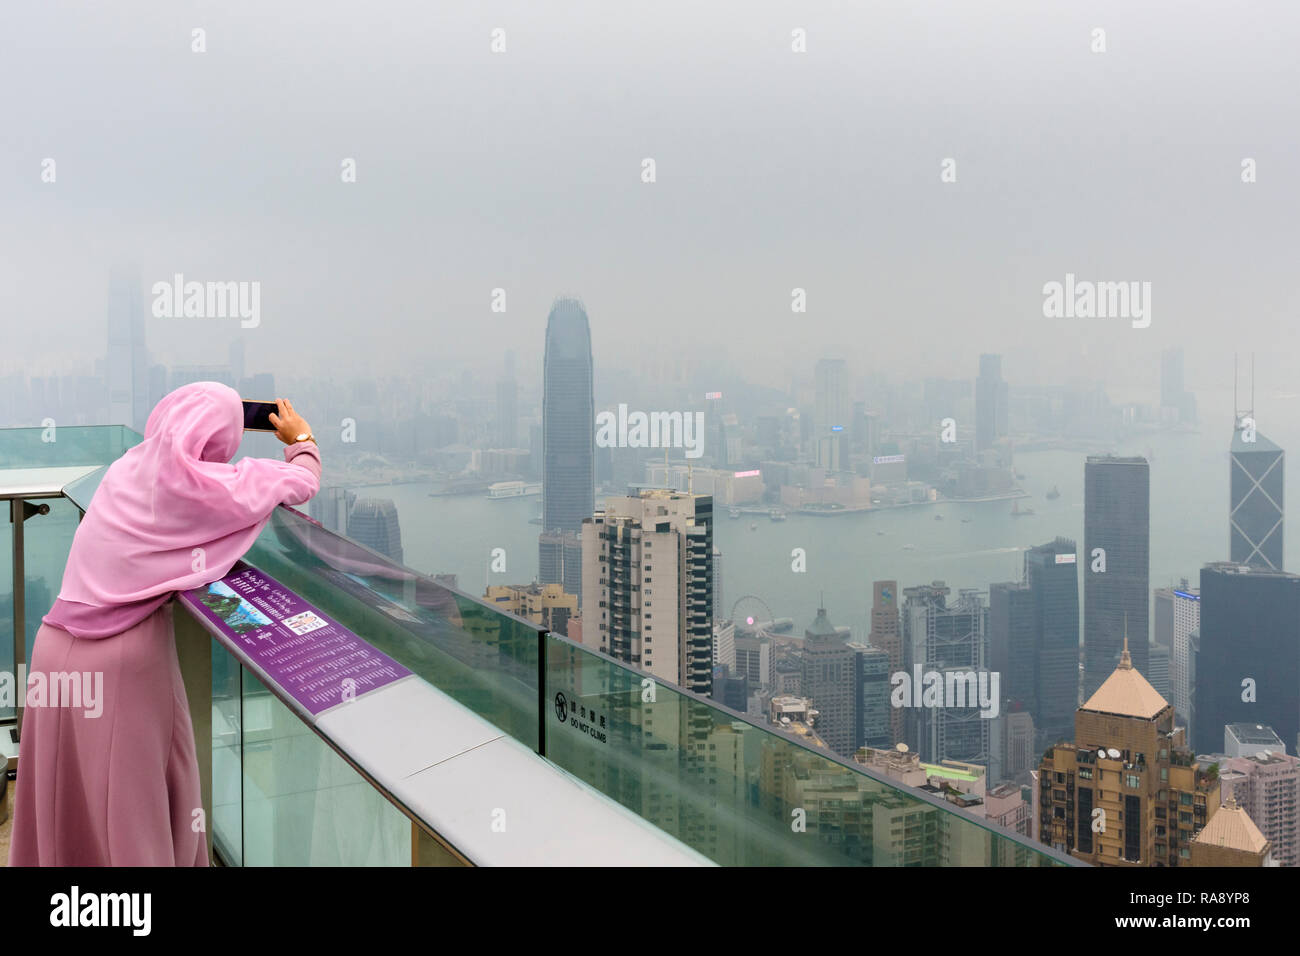 Femme prend un téléphone portable photo sur le pont de la plate-forme d'observation de la tour de pointe limitée par la brume de la pollution de l'air, Hong Kong Photo Stock